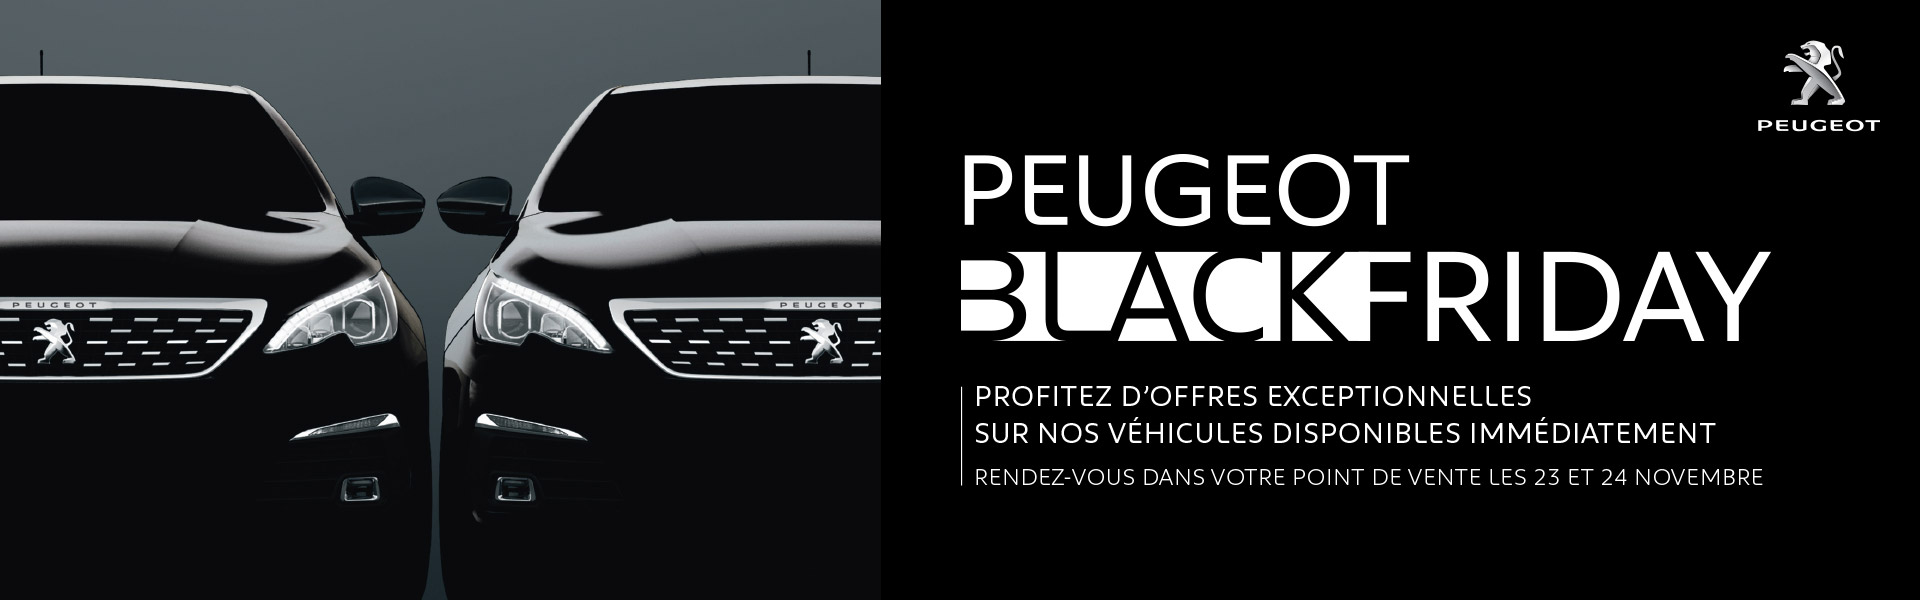 black friday peugeot peugeot fontainebleau. Black Bedroom Furniture Sets. Home Design Ideas